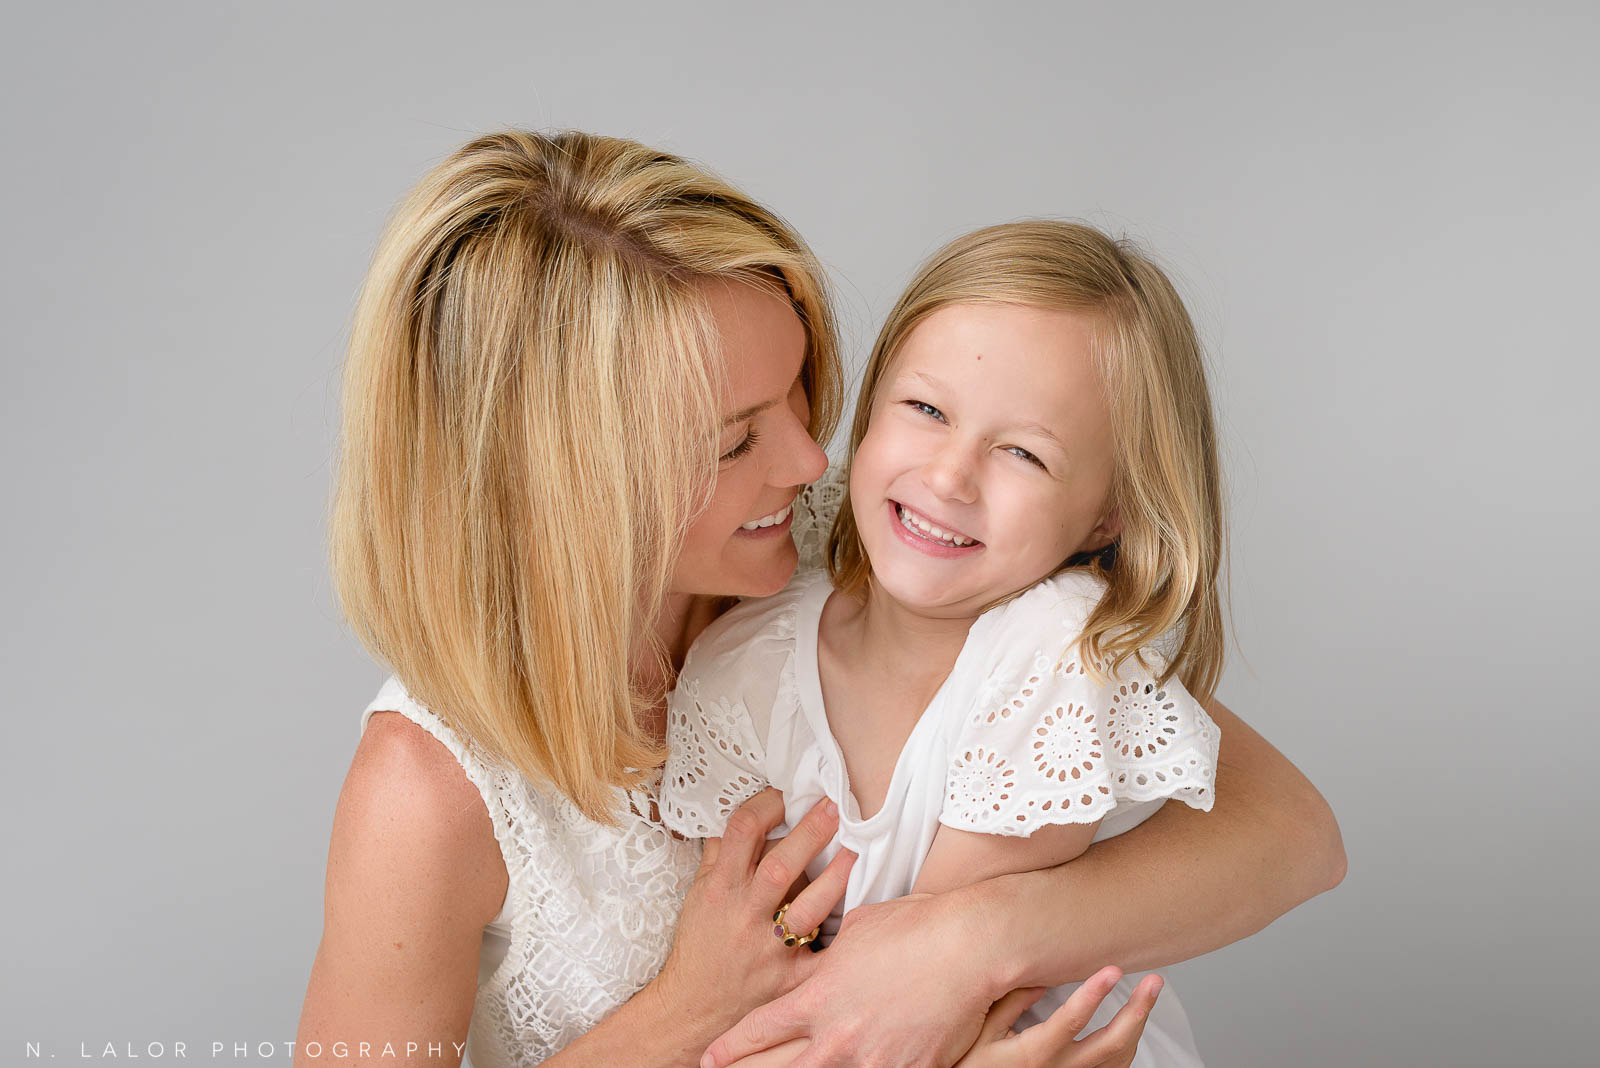 A spontaneous-looking photo between a mother and her daughter. The mother is hugging her daughter close while they both giggle in a shared moment of joy. Photo of N. Lalor Photography Studio in Greenwich, Connecticut.